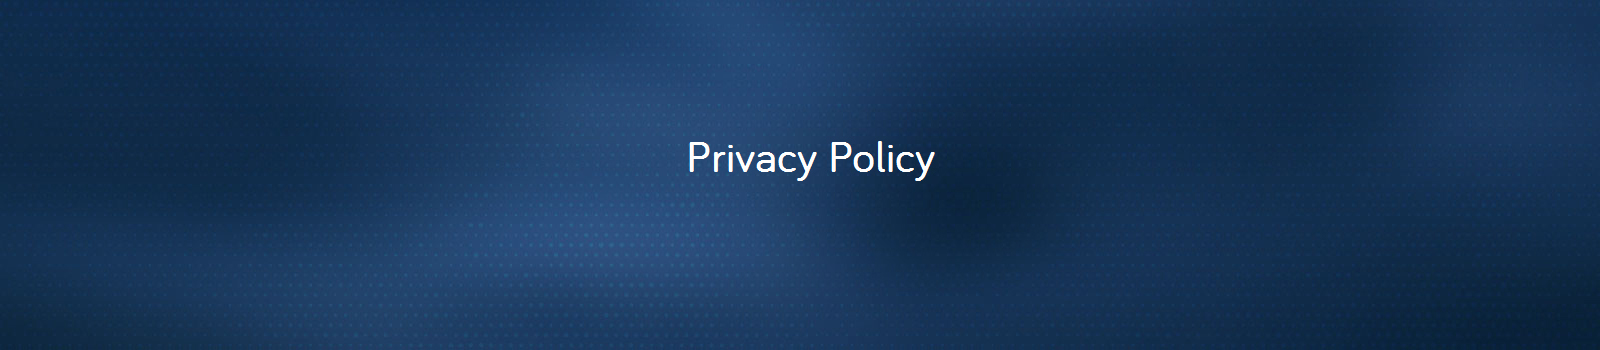 wisoft privacy policy